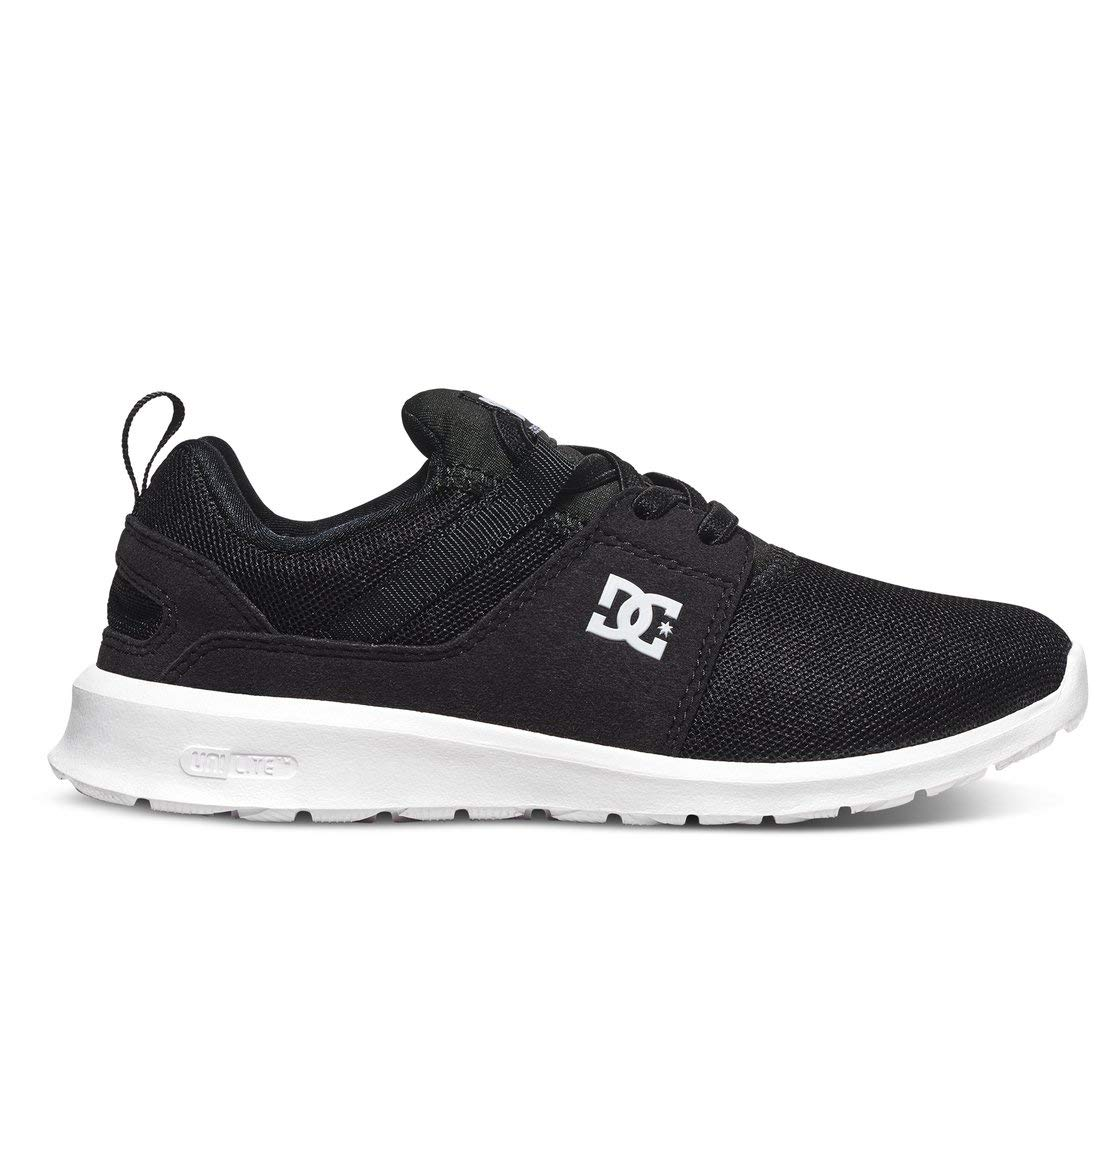 DC Shoes Boys Shoes Heathrow - Shoes - Boys - US 4.5 - Black Black/White US 4.5 / UK 3.5 / EU 35.5